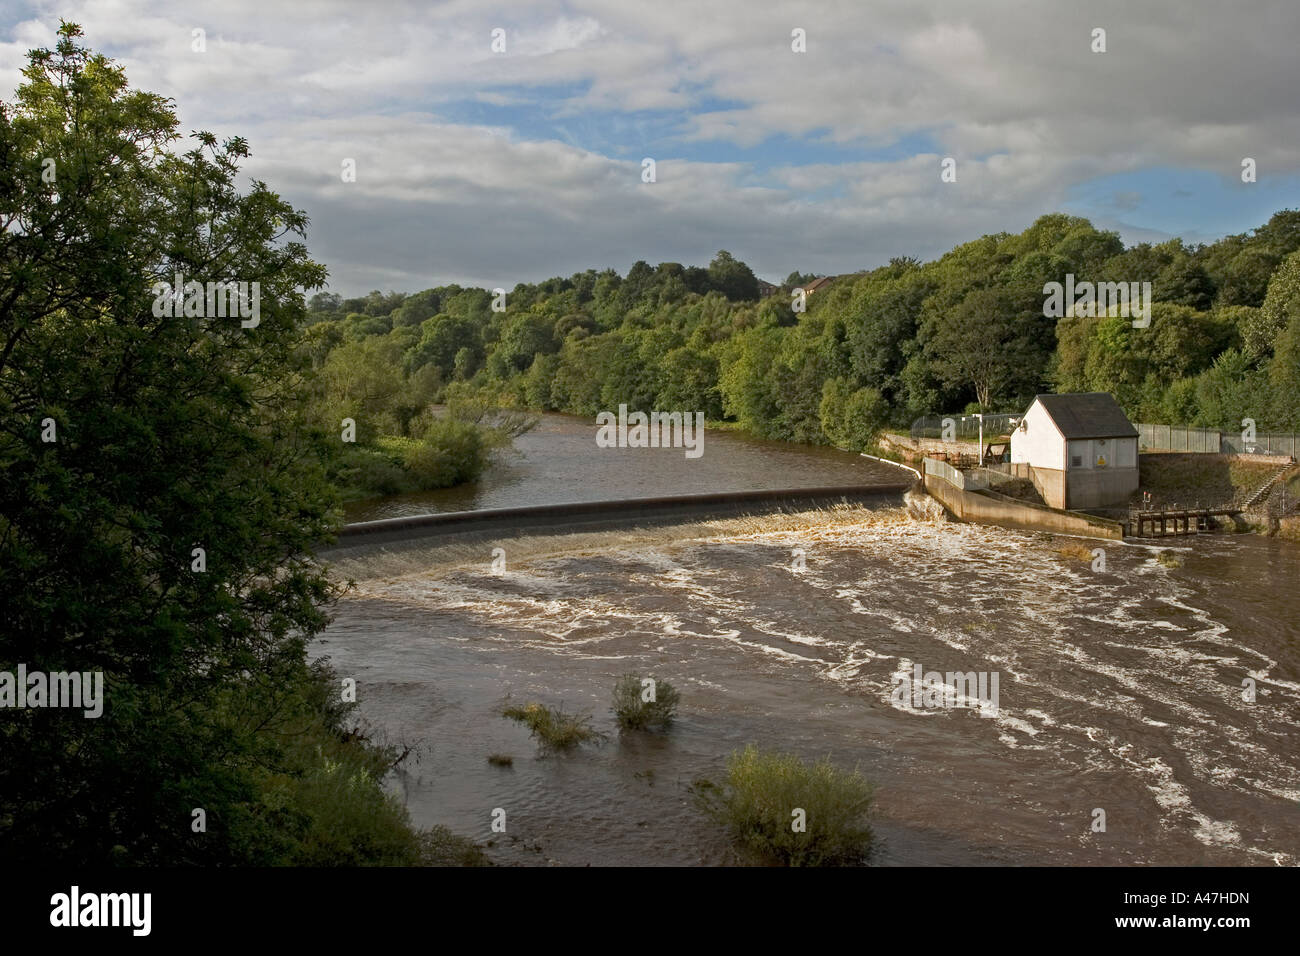 Weir And Turbine House Of Blantyre Hydro Electric Power